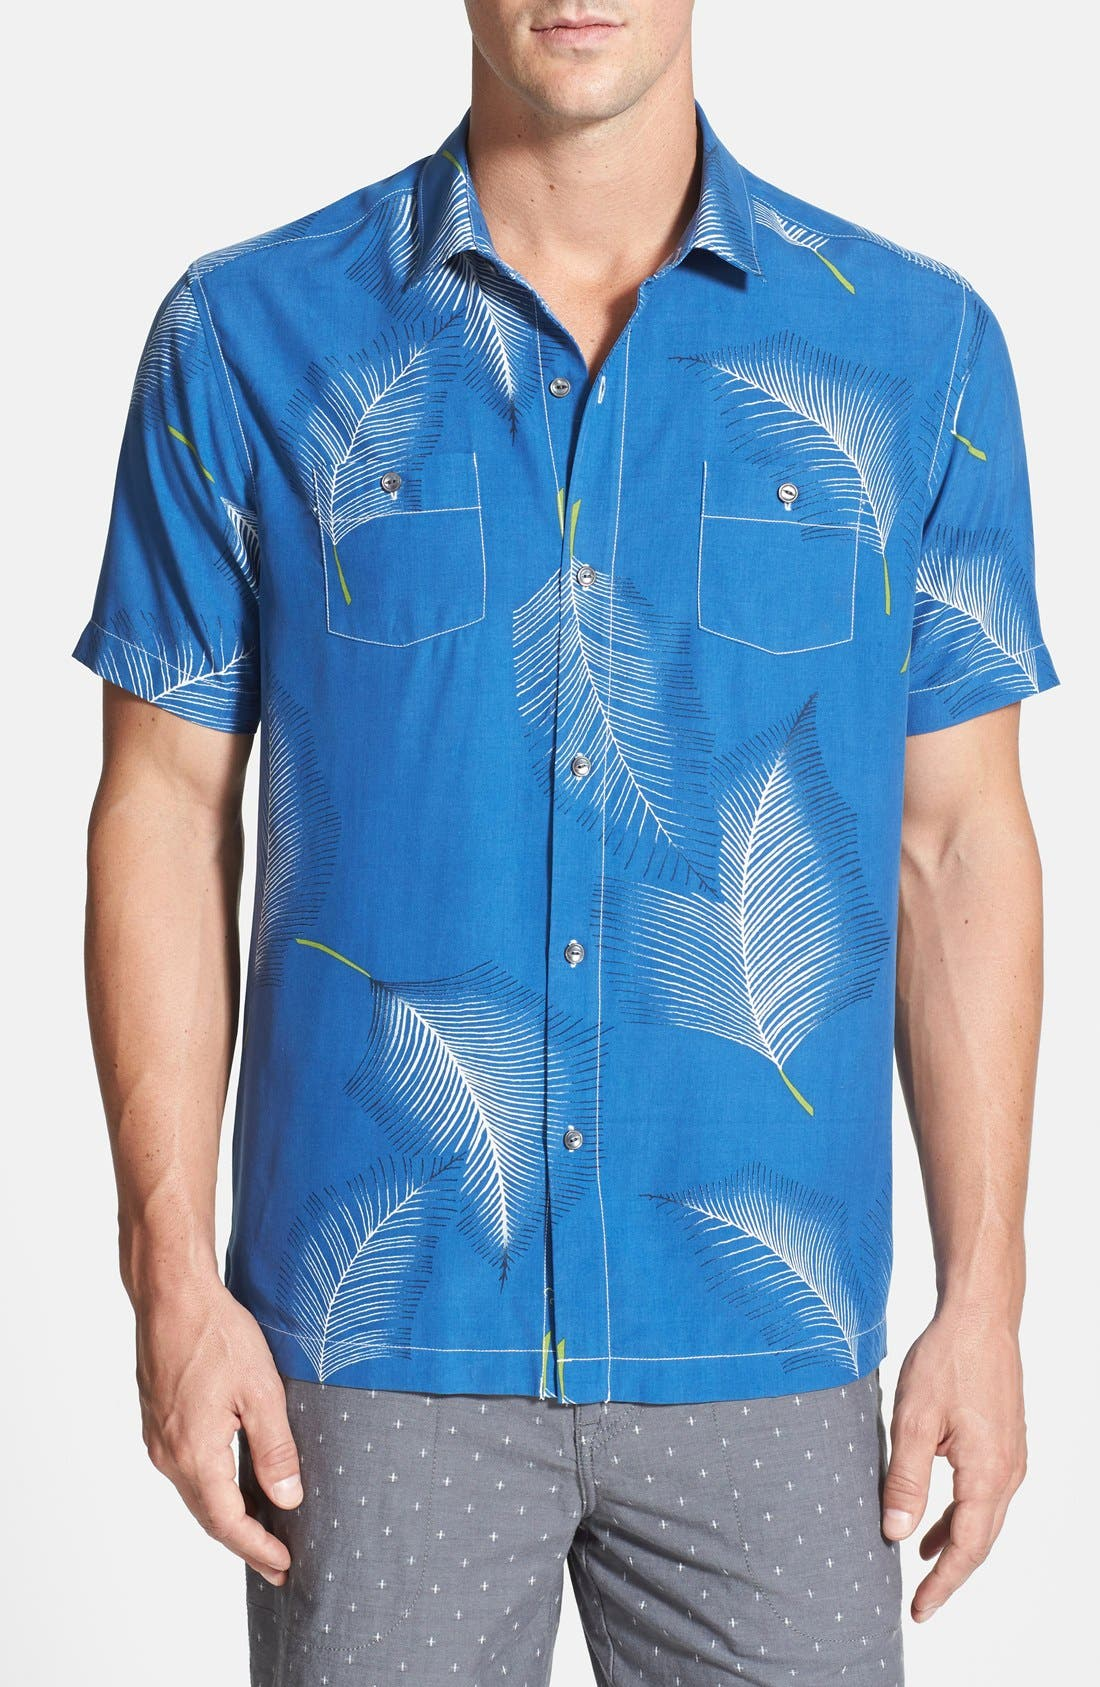 Alternate Image 1 Selected - Tommy Bahama 'Feathered Fronds' Island Modern Fit Silk Campshirt